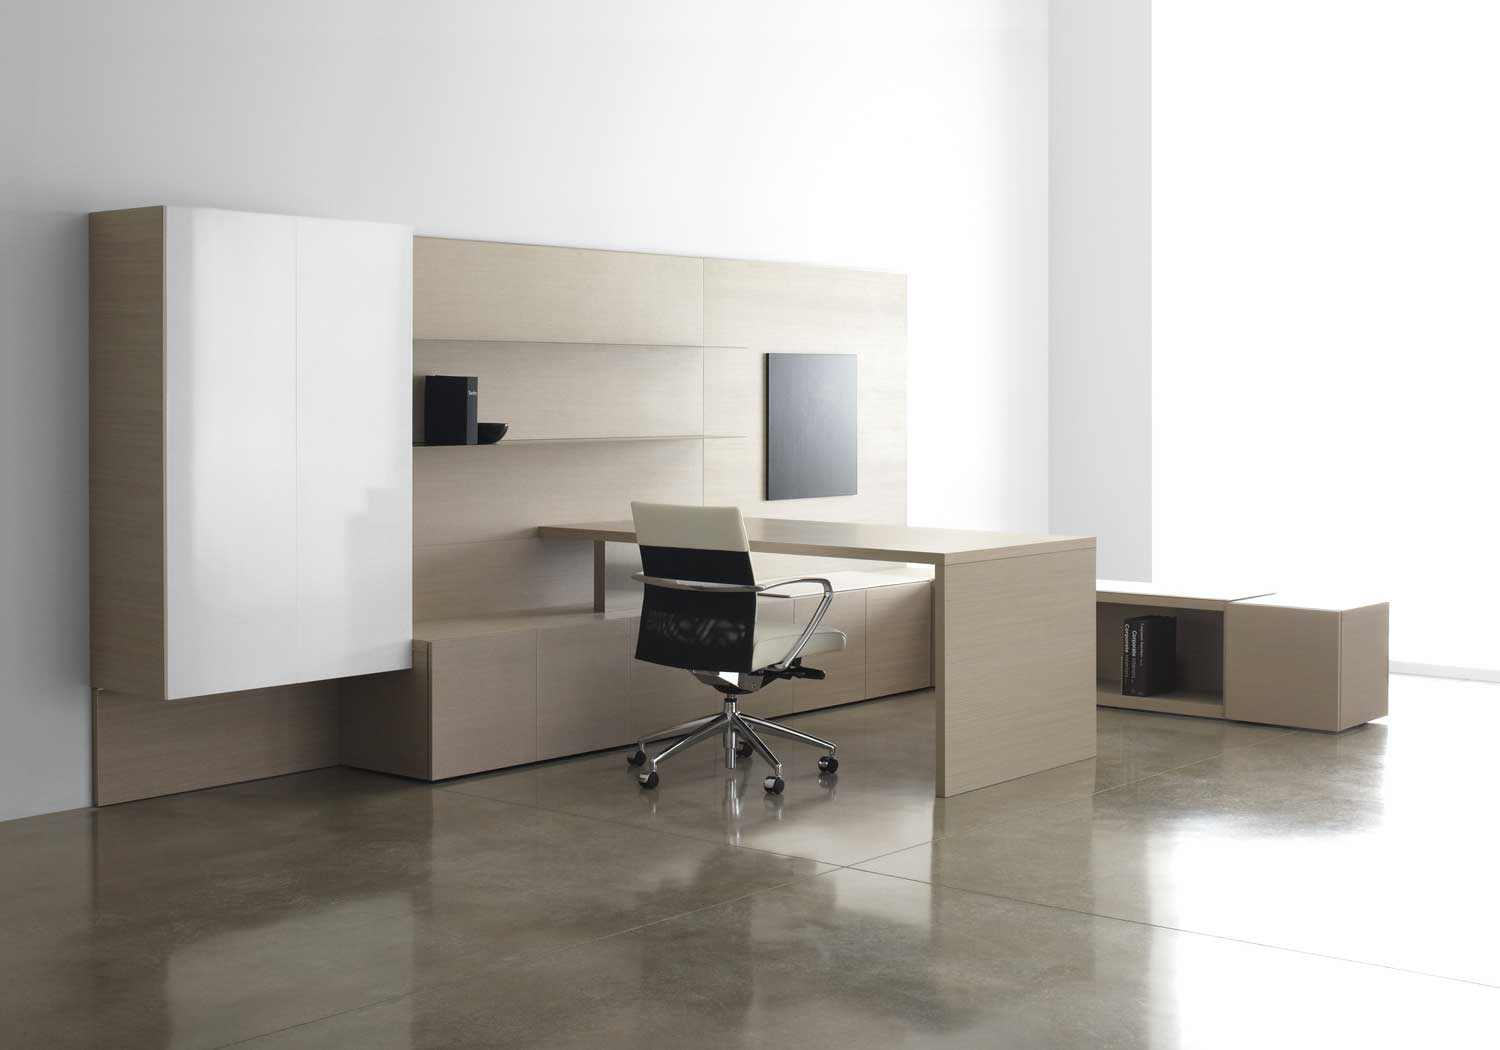 Comluxury Office Furniture : Luxury Office Furniture: How and When to Incorporate It  Modern ...